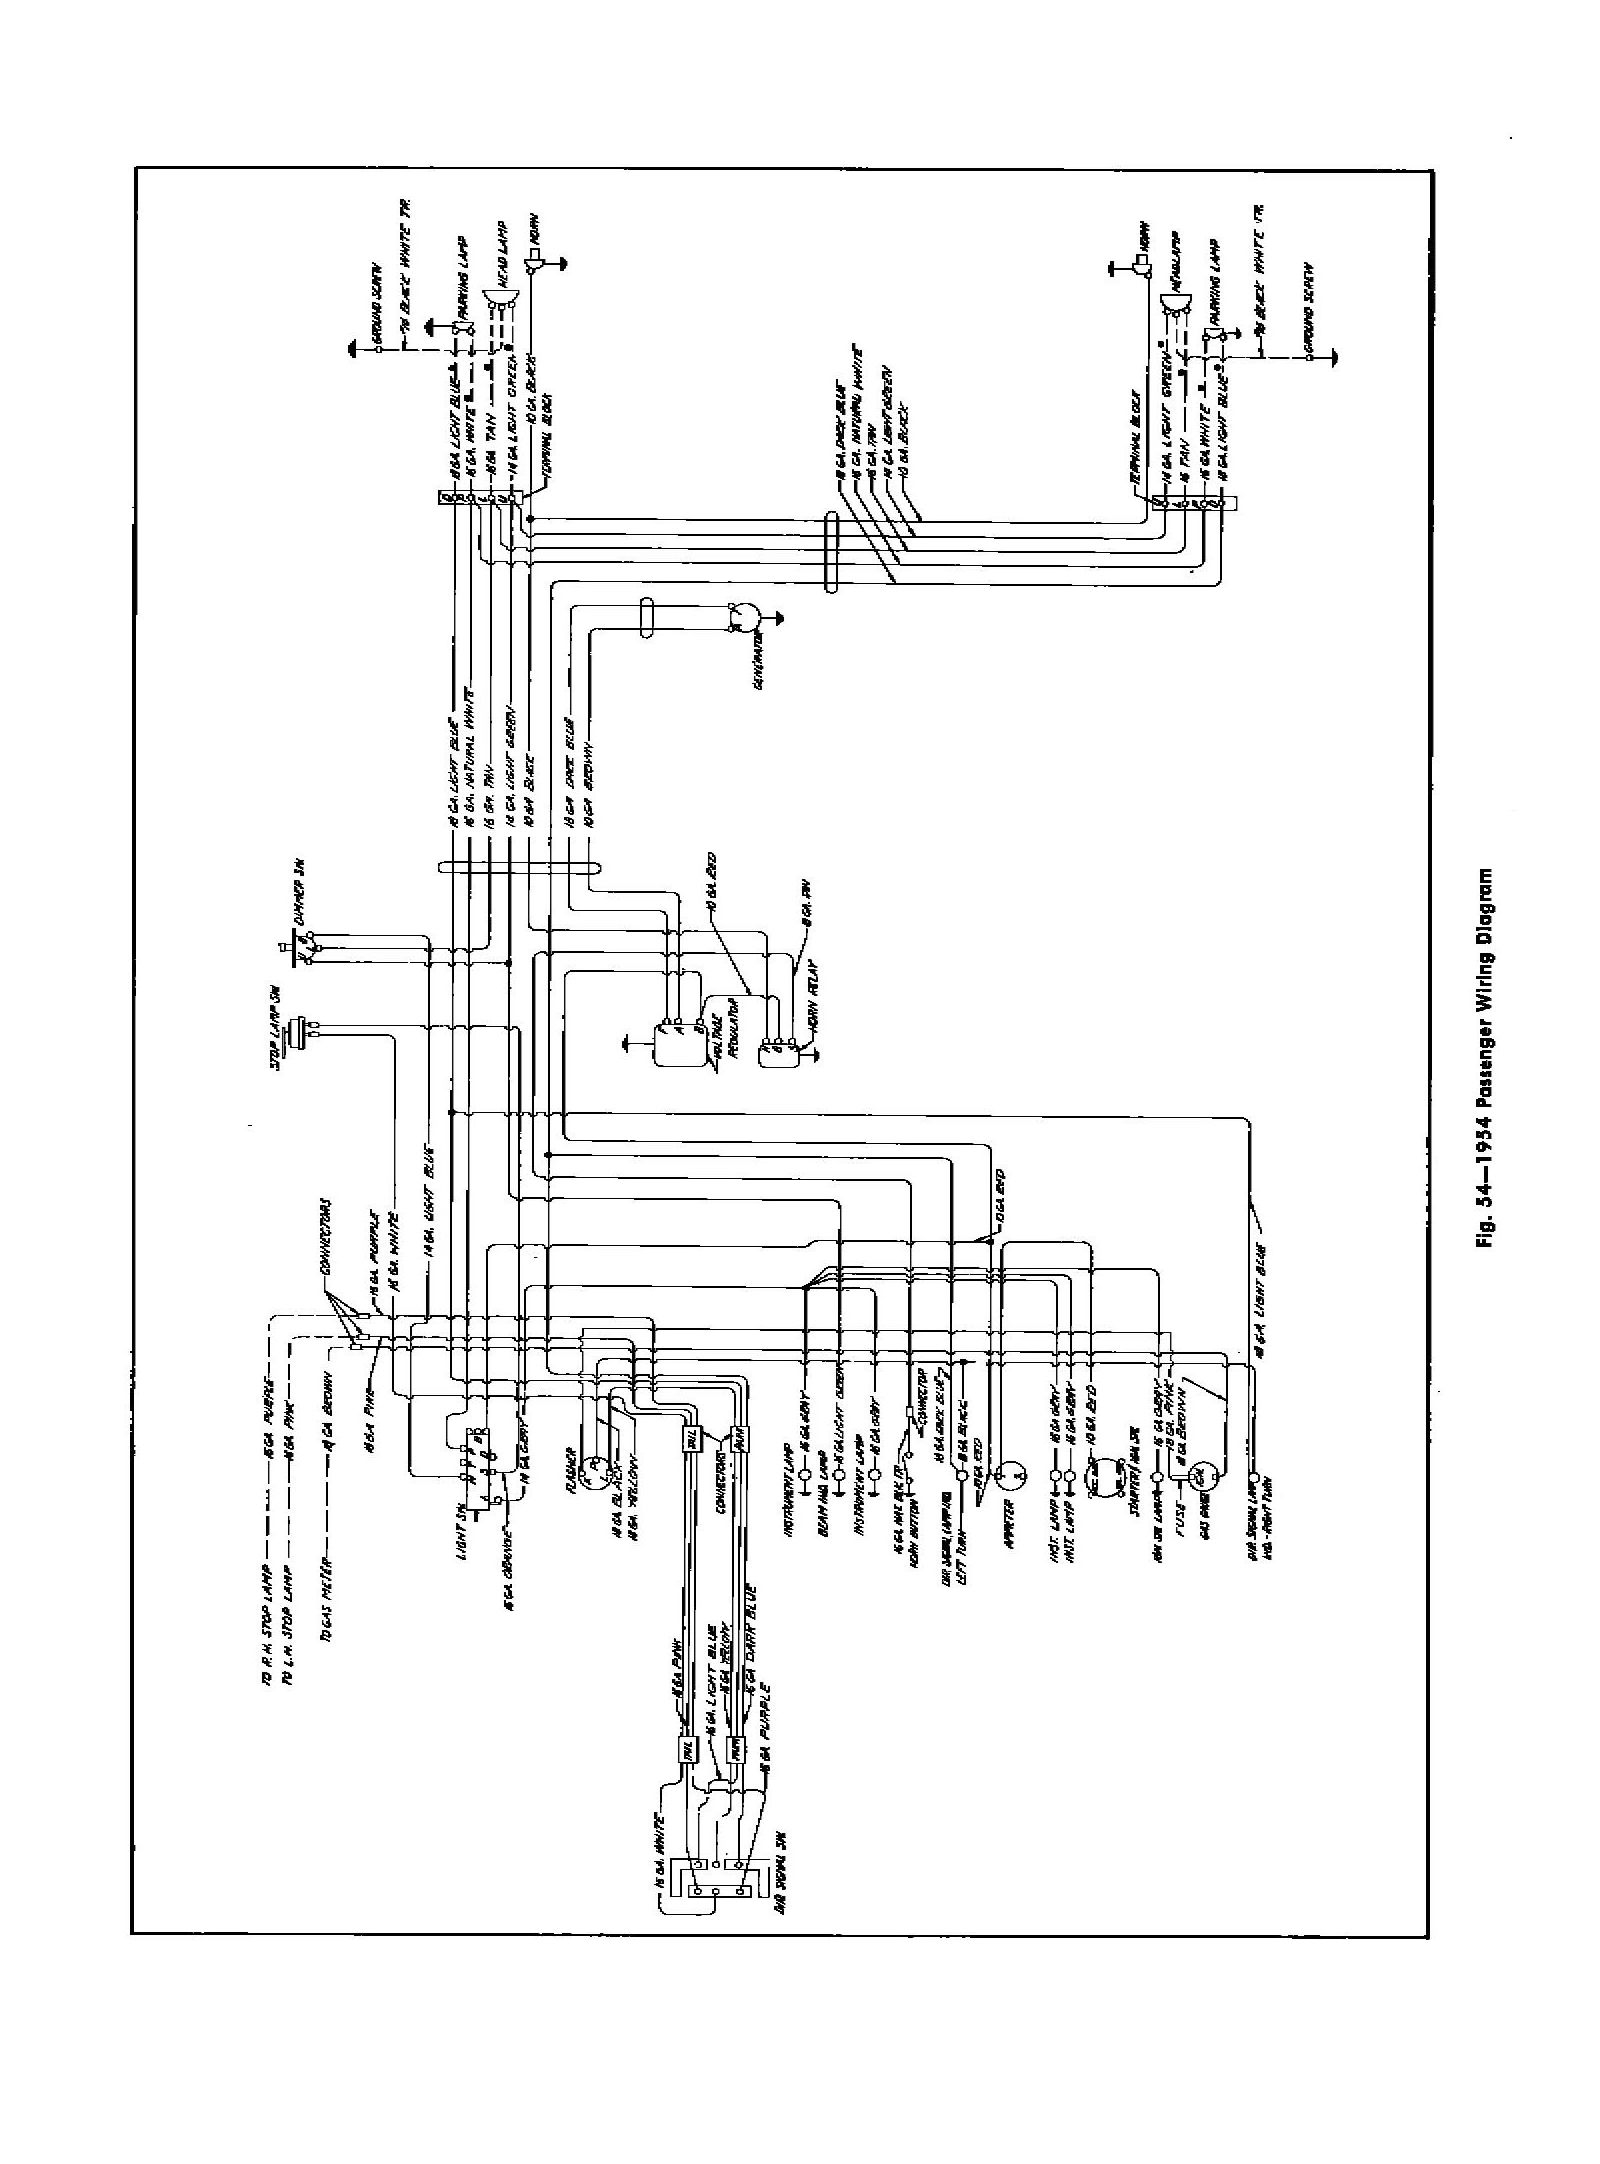 hight resolution of complete wiring diagram for 1954 chevrolet truck wiring diagram online 1967 chevy pickup headlight wiring diagram 1954 chevy wiring diagram